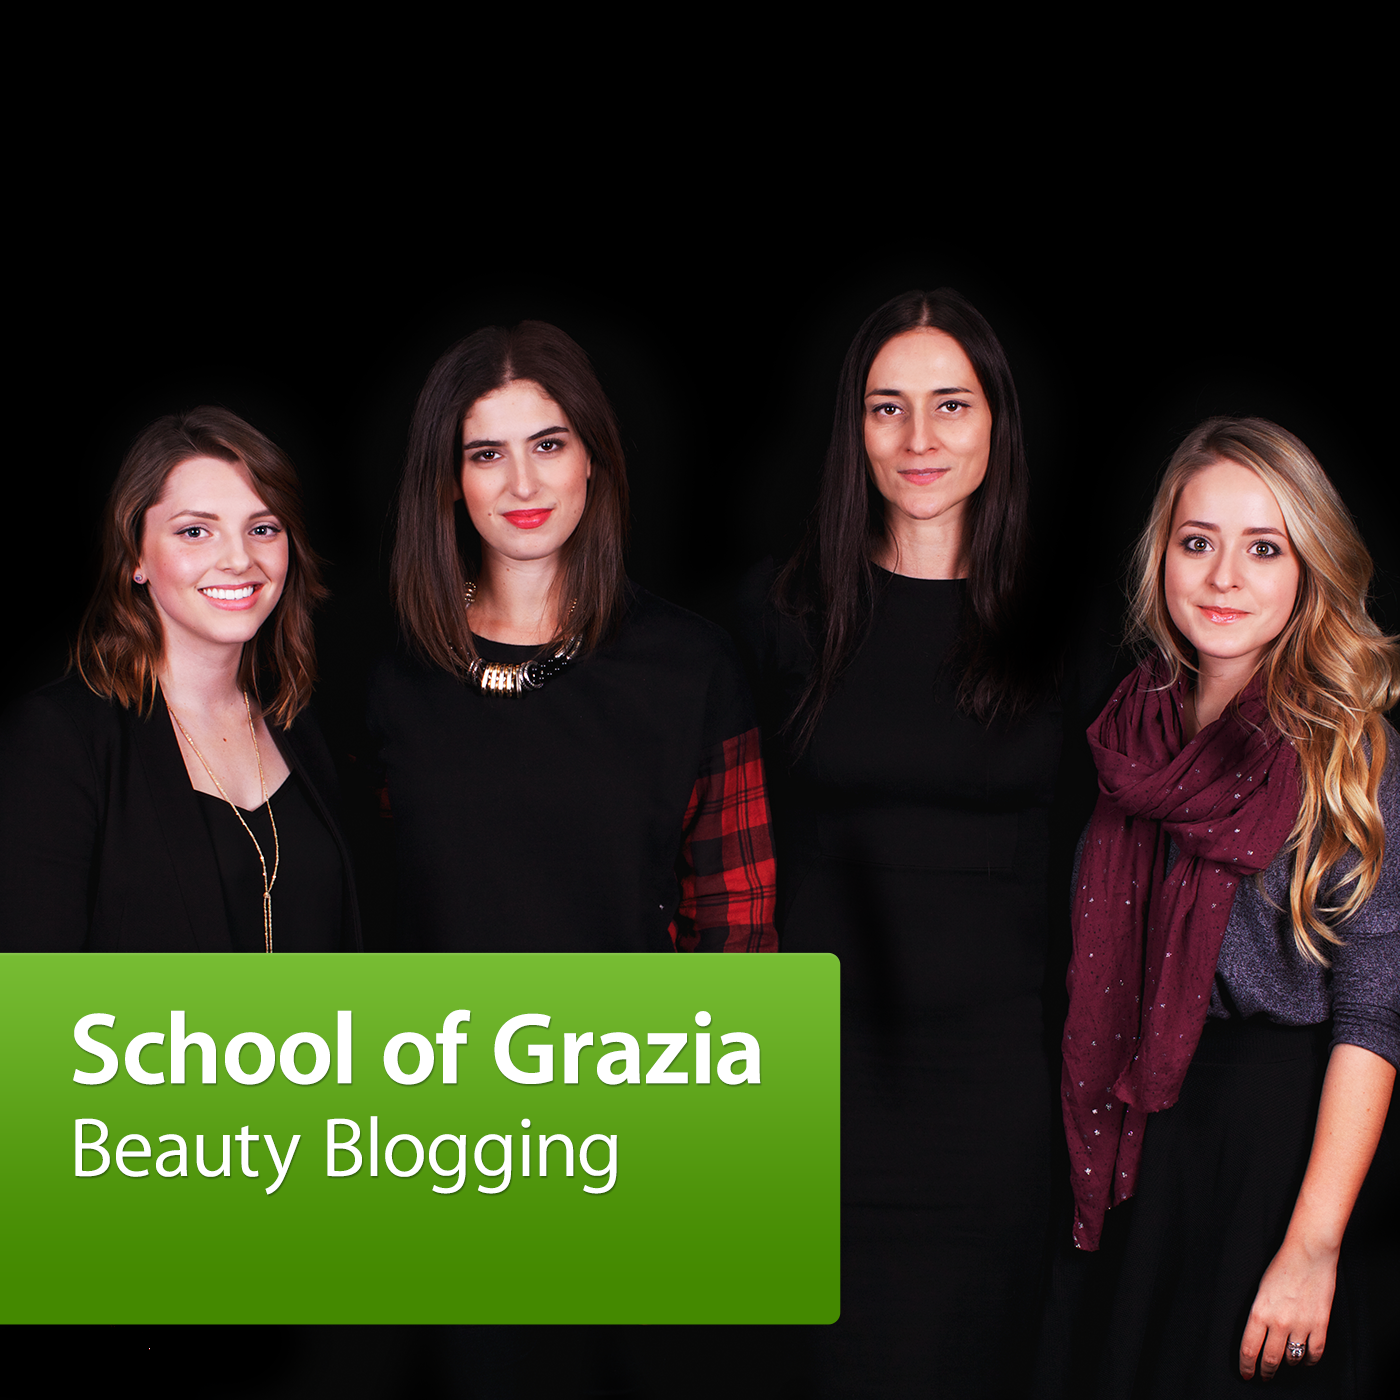 School of Grazia: Beauty Blogging